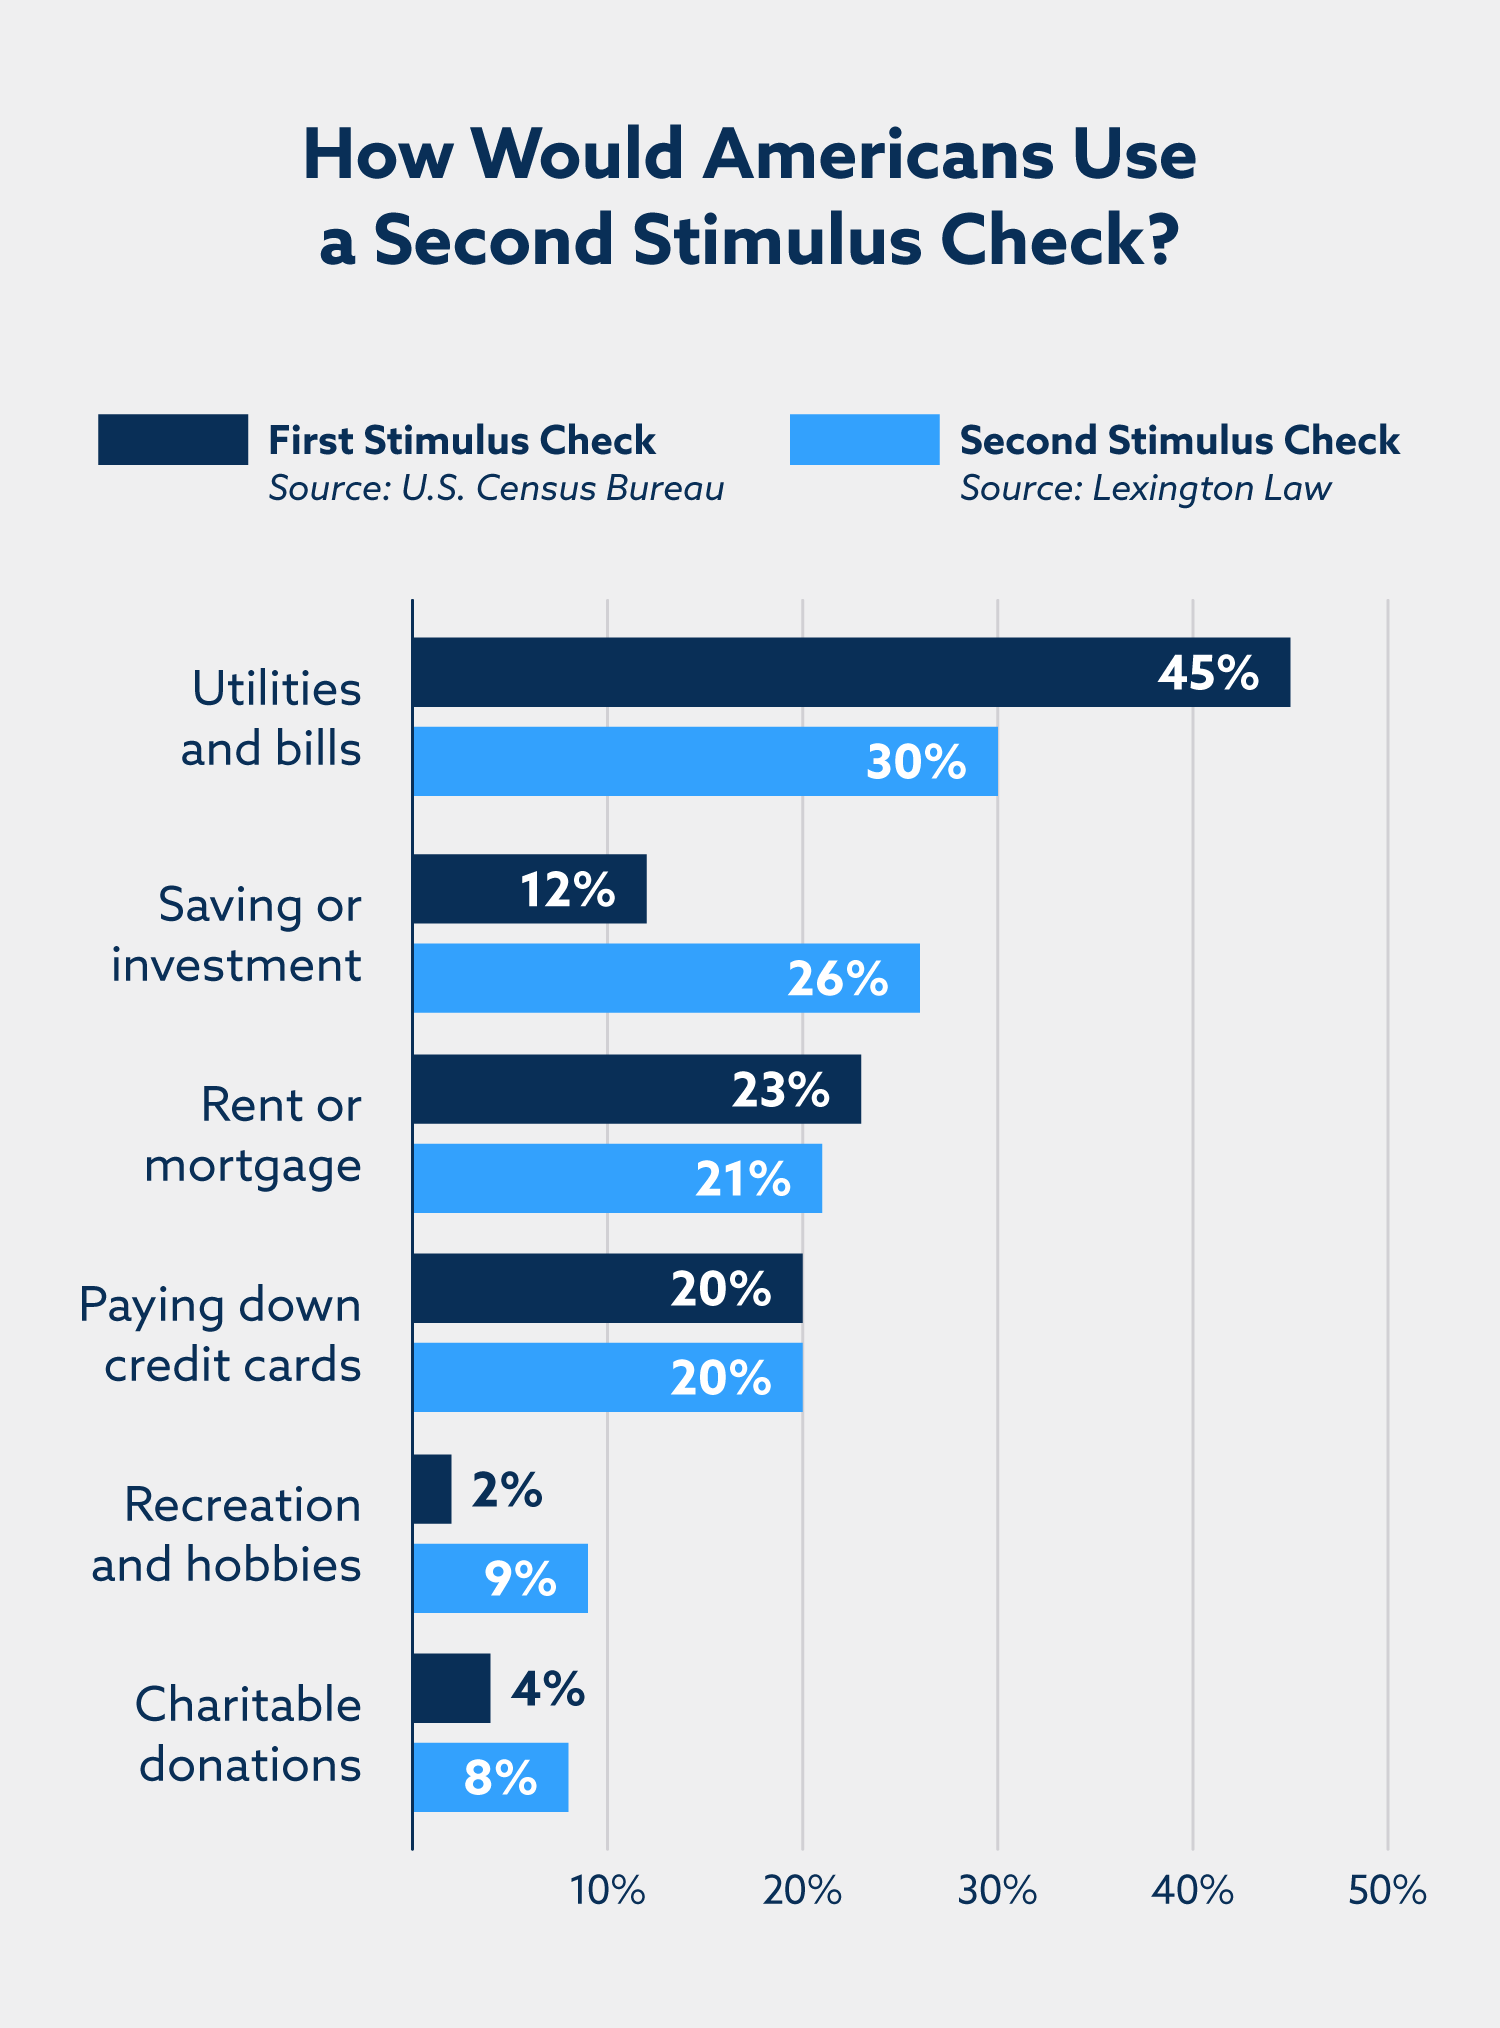 How would Americans use a second stimulus check? Utilities and bills: 30%. Saving or investment: 26%. Rent or mortgage: 21%. Paying down credit cards: 20%. Recreation and hobbies: 9%. Charitable donations: 8%.